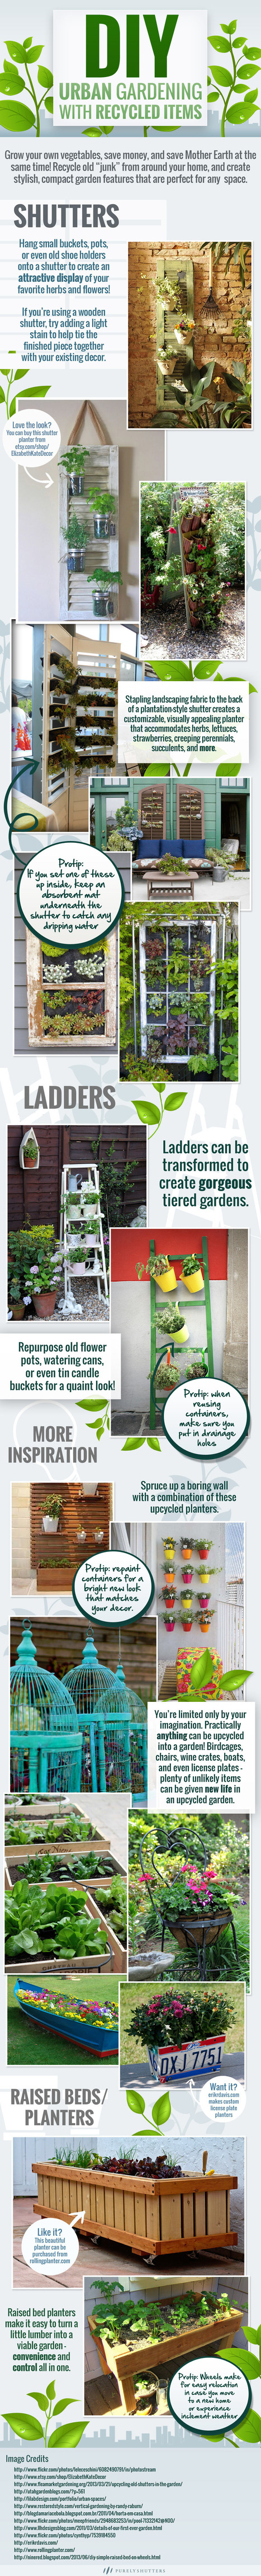 DIY – Urban Gardening with Recycled Items | Residential Spaces | Scoop.it